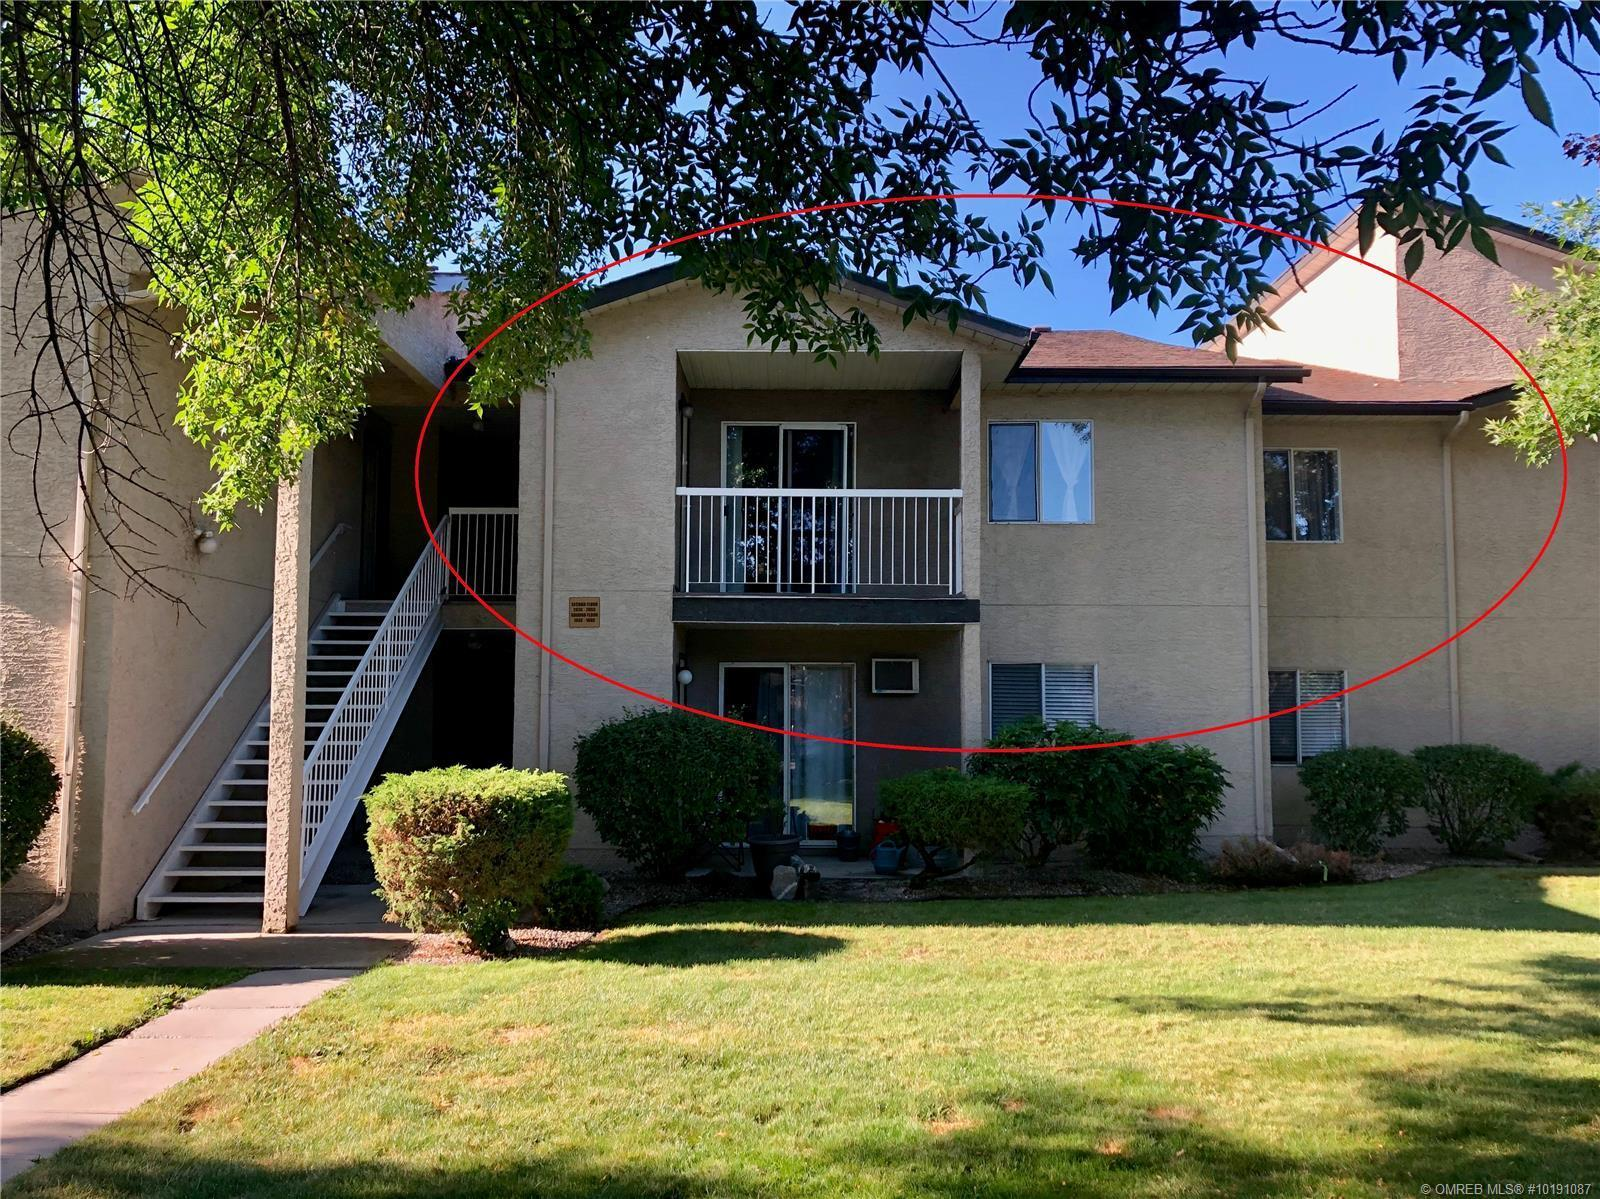 Removed: 203c - 735 Cook Road, Kelowna, BC - Removed on 2019-11-03 11:57:16